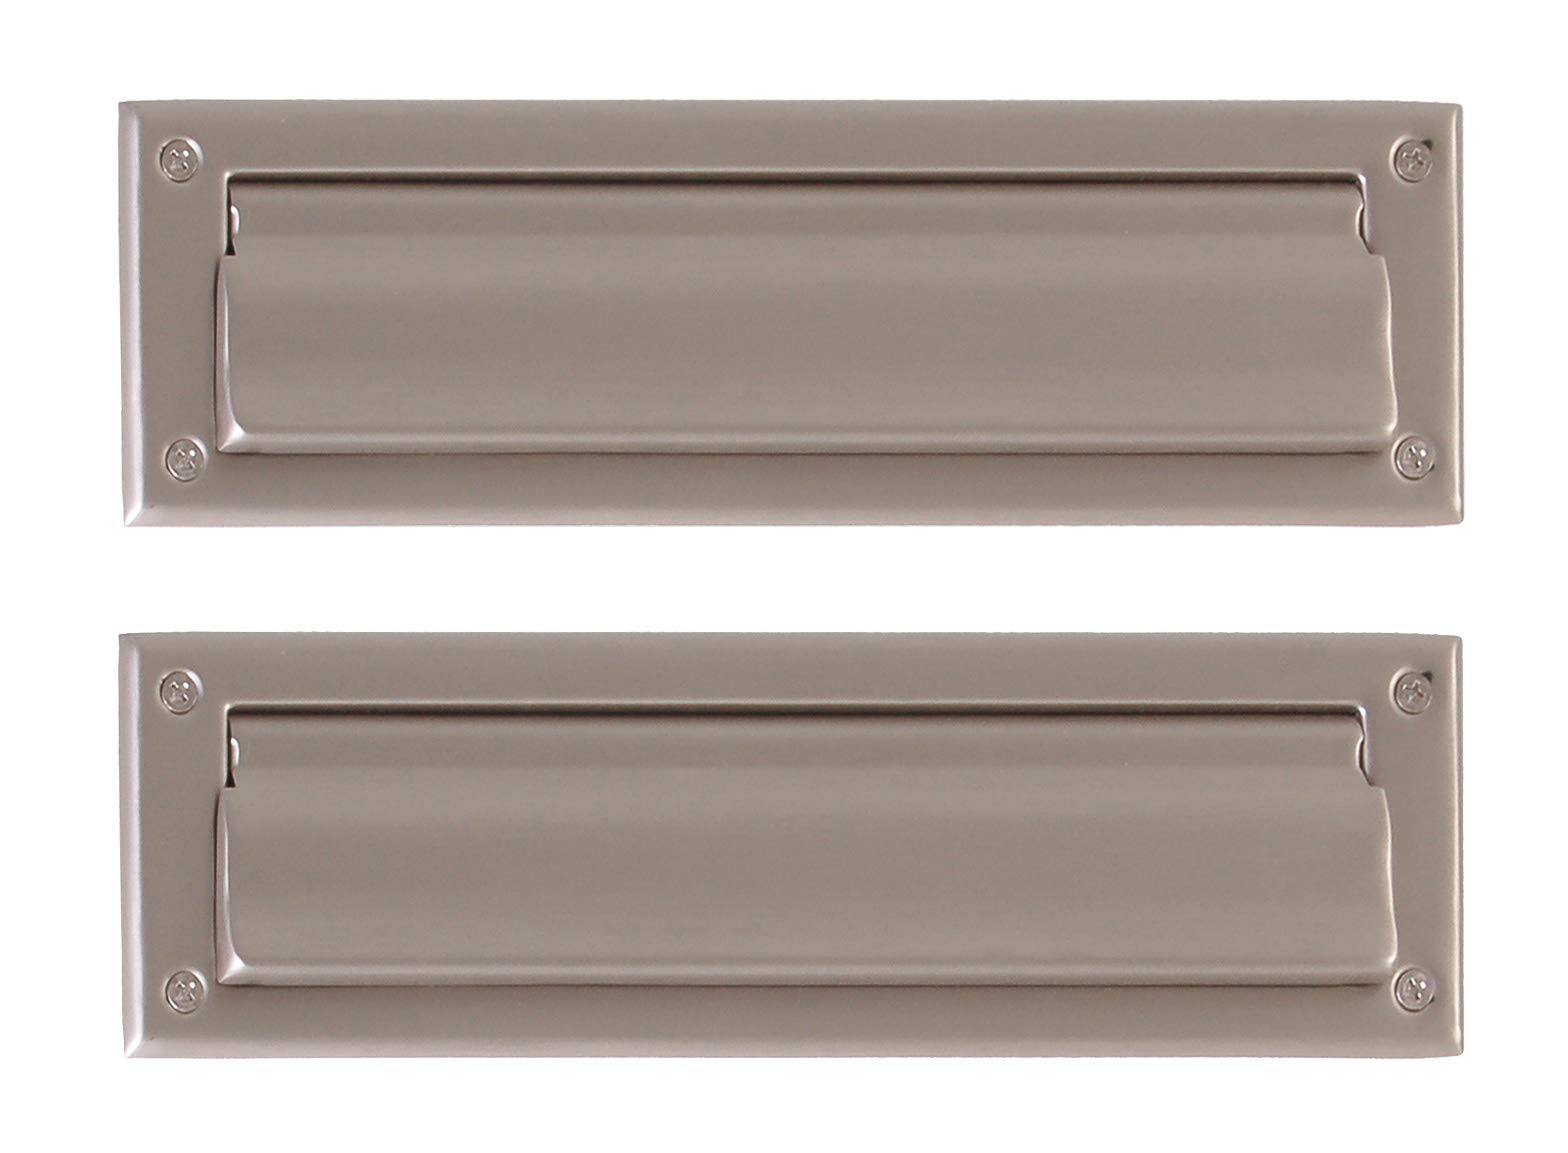 BRASS Accents A07-M0010-619 Mail Slot 3 5/8'' x 13'', Satin Nickel